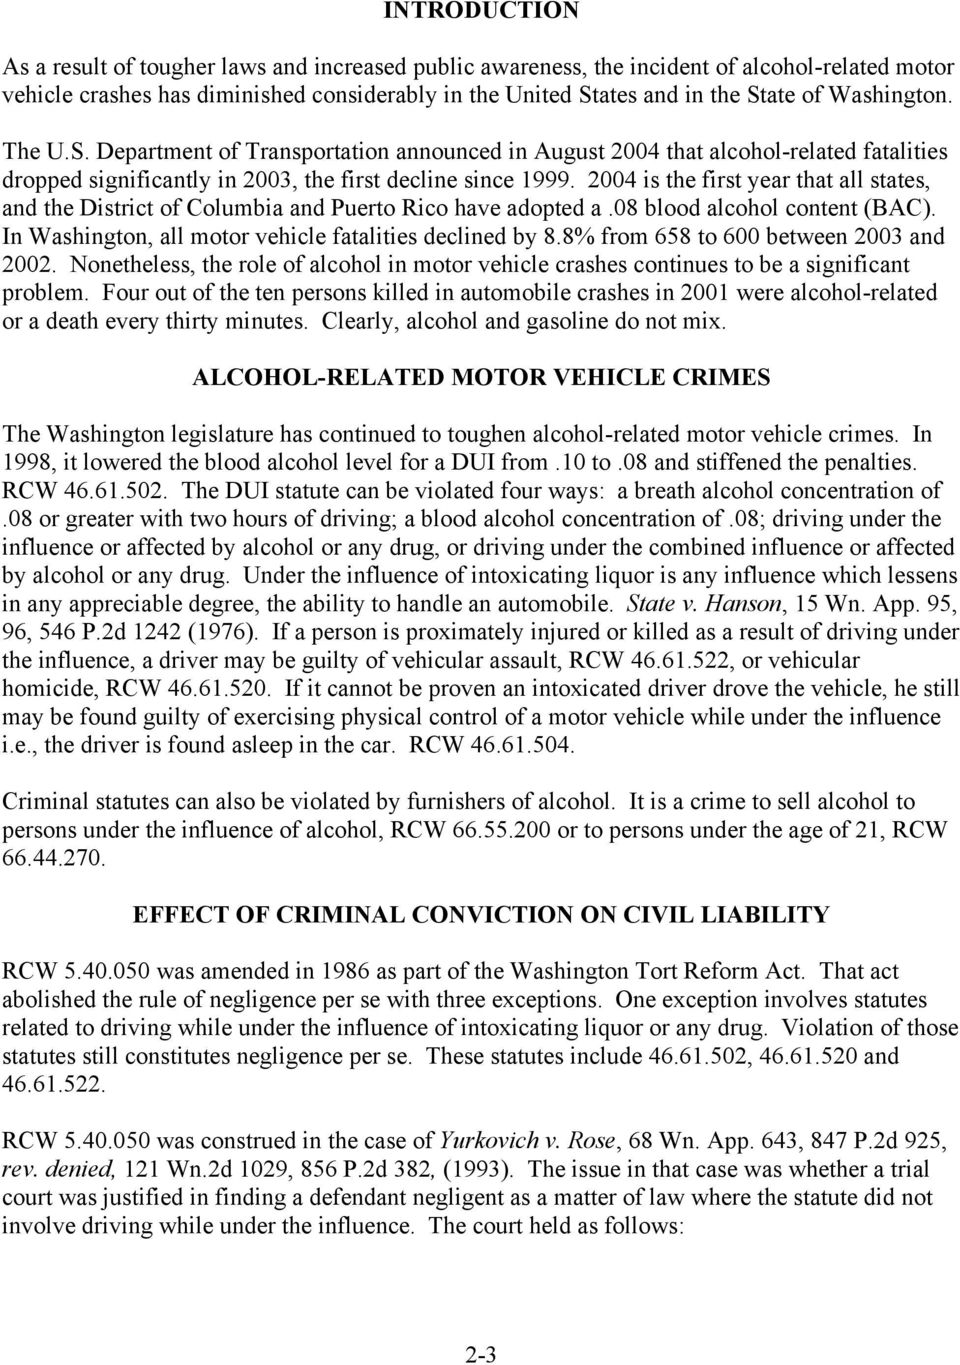 2004 is the first year that all states, and the District of Columbia and Puerto Rico have adopted a.08 blood alcohol content (BAC). In Washington, all motor vehicle fatalities declined by 8.